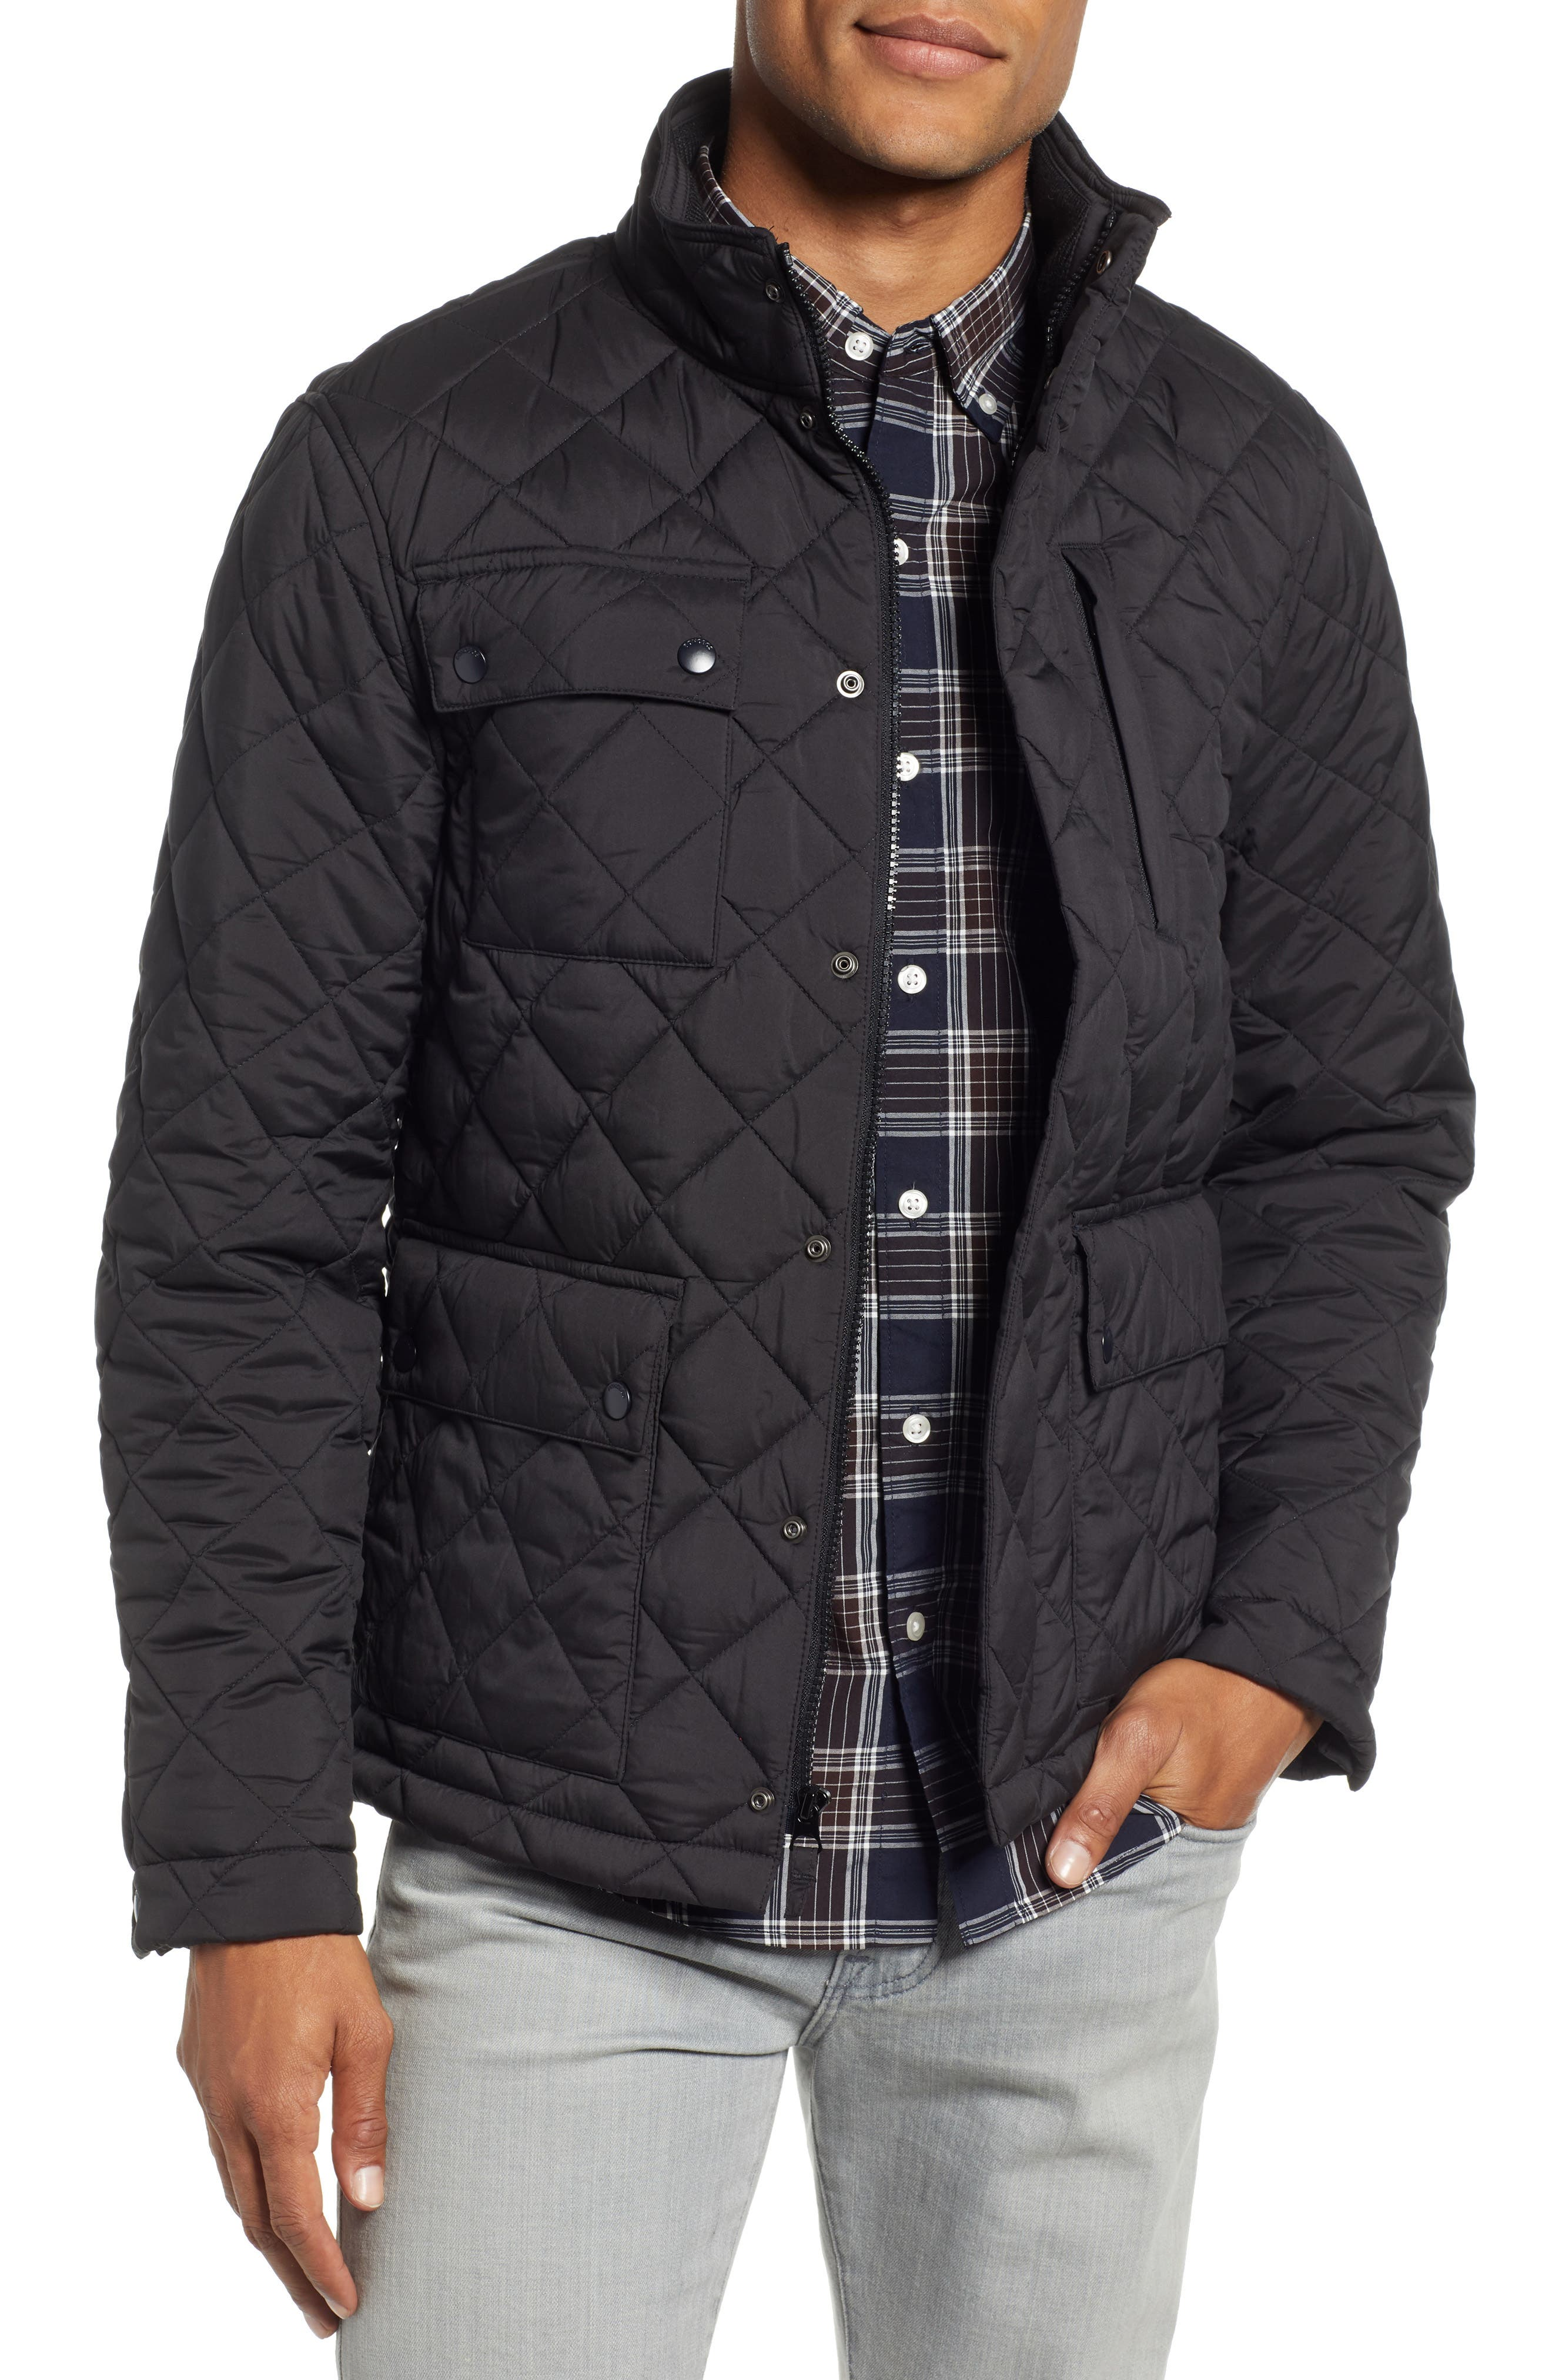 Banff Quilted Jacket,                             Main thumbnail 1, color,                             BLACK